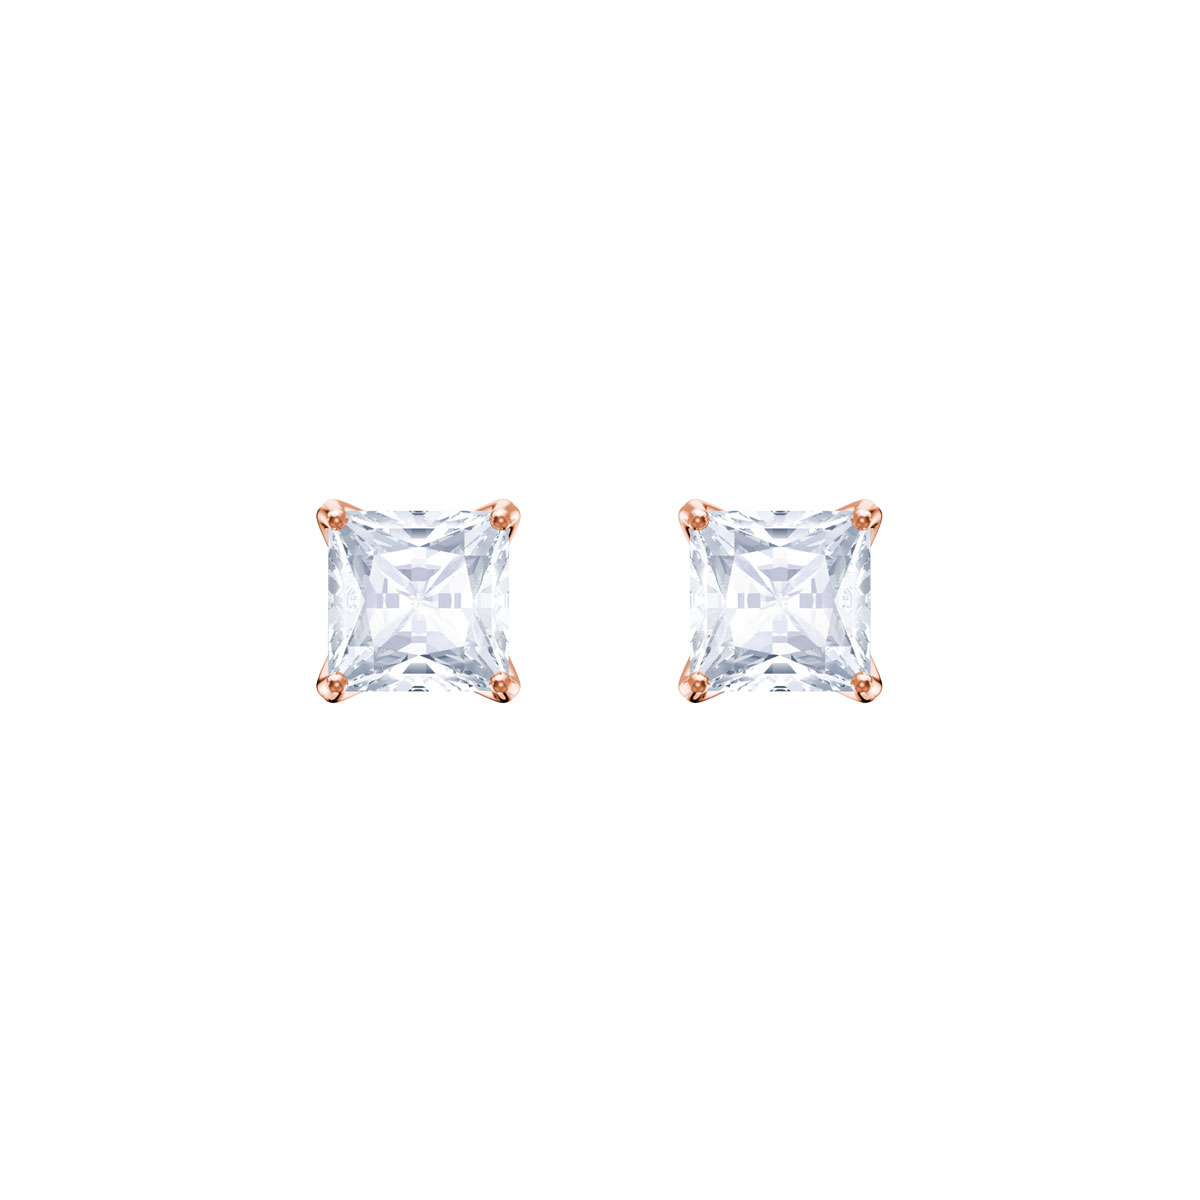 Swarovski Attract Stud Pierced Earrings, White, Rose Gold